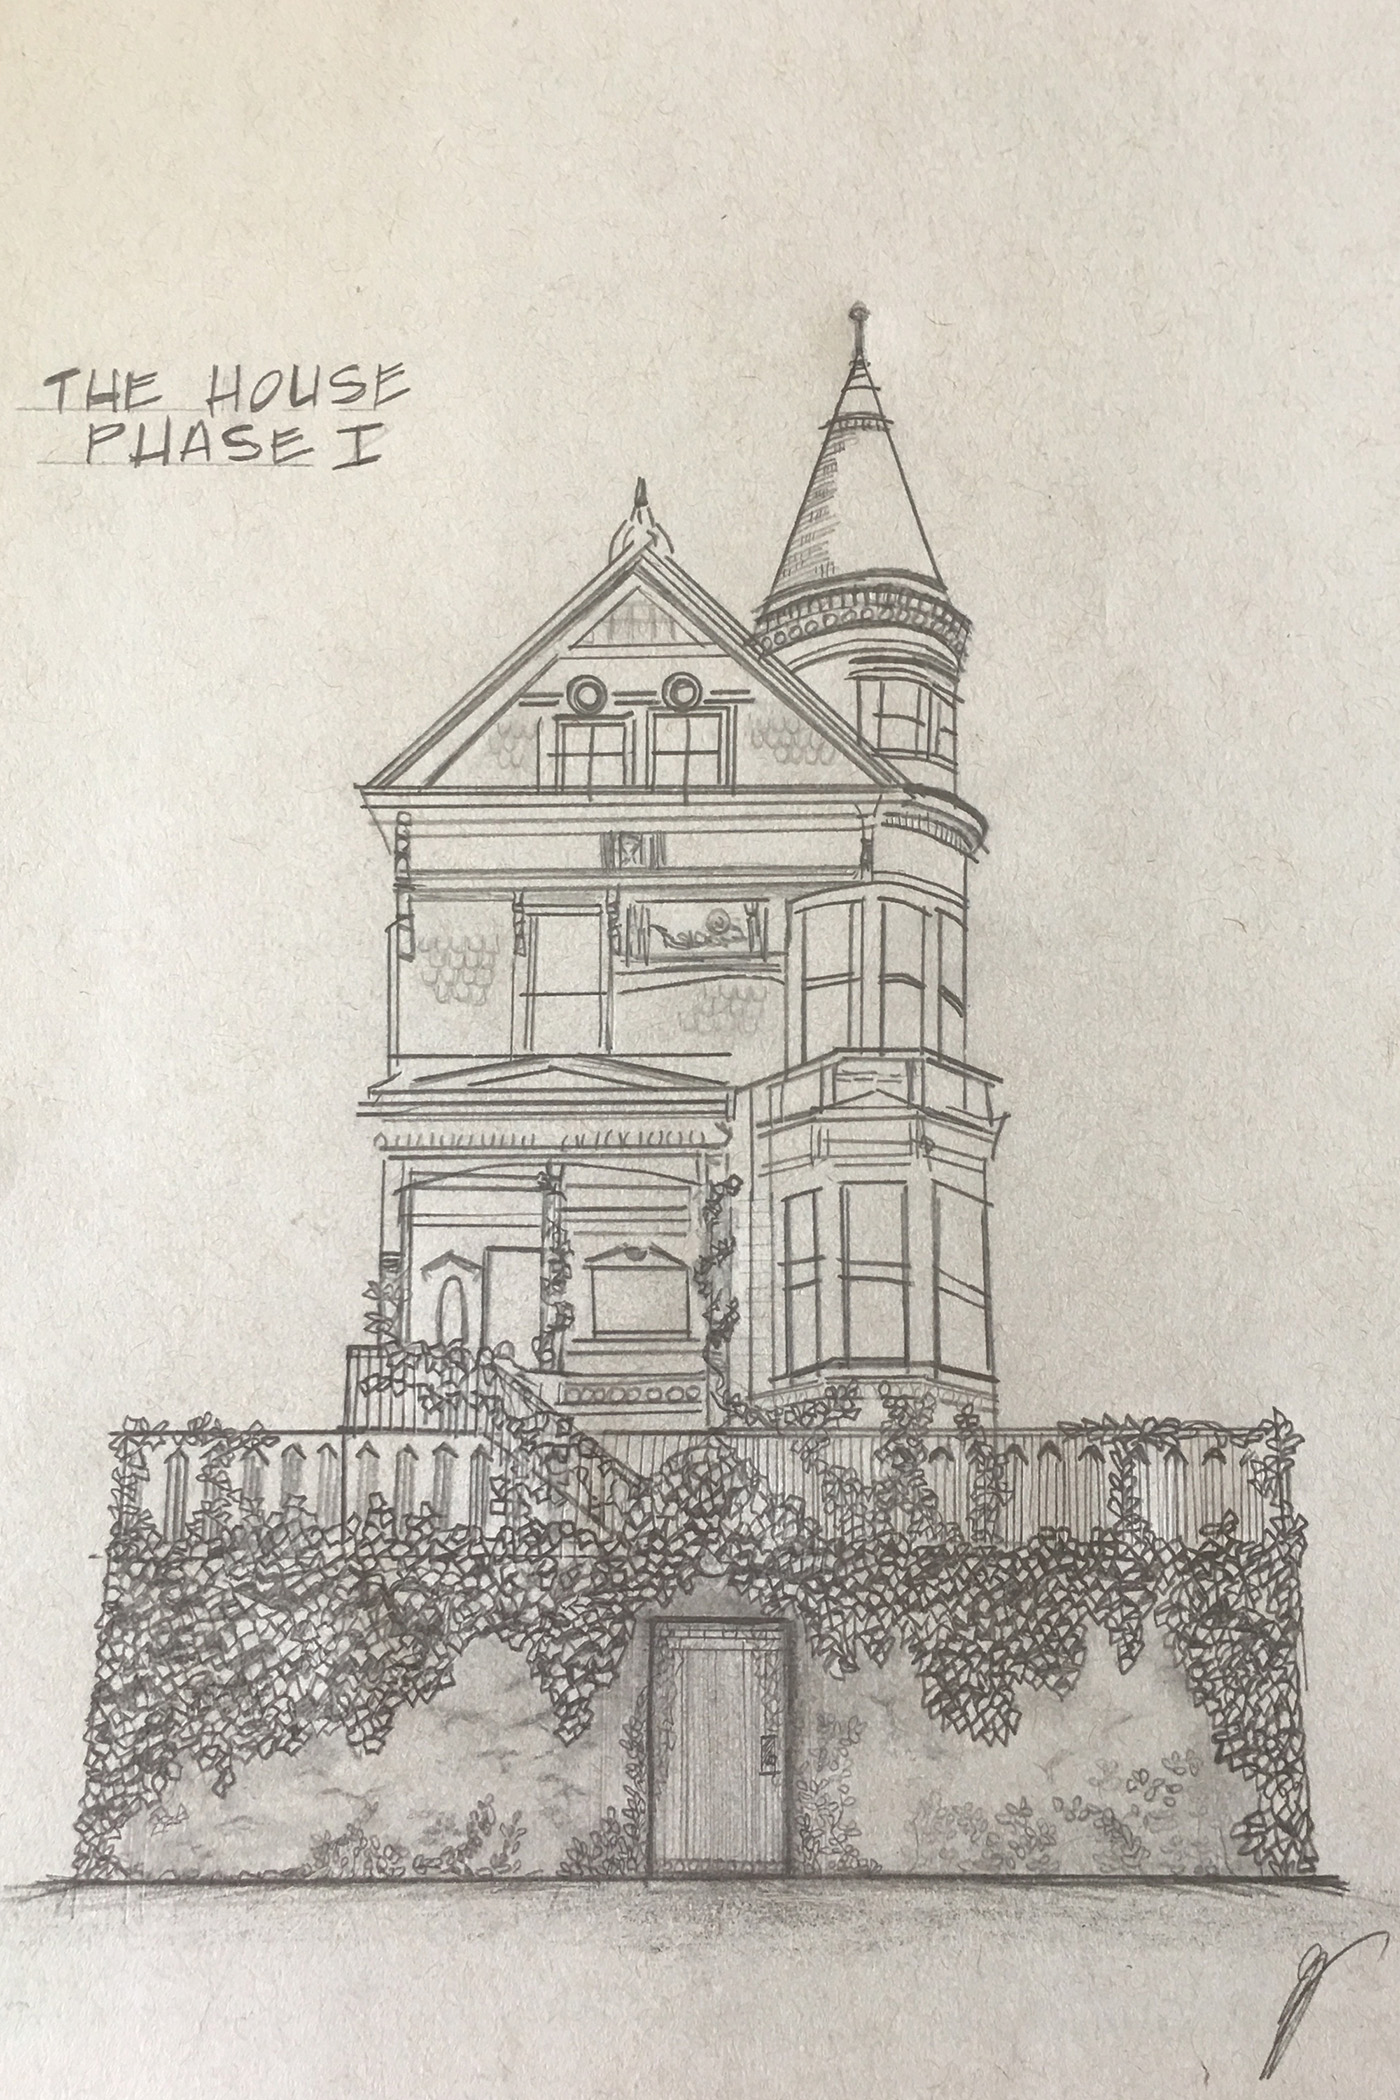 """THE HOUSE"" - SKETCH"